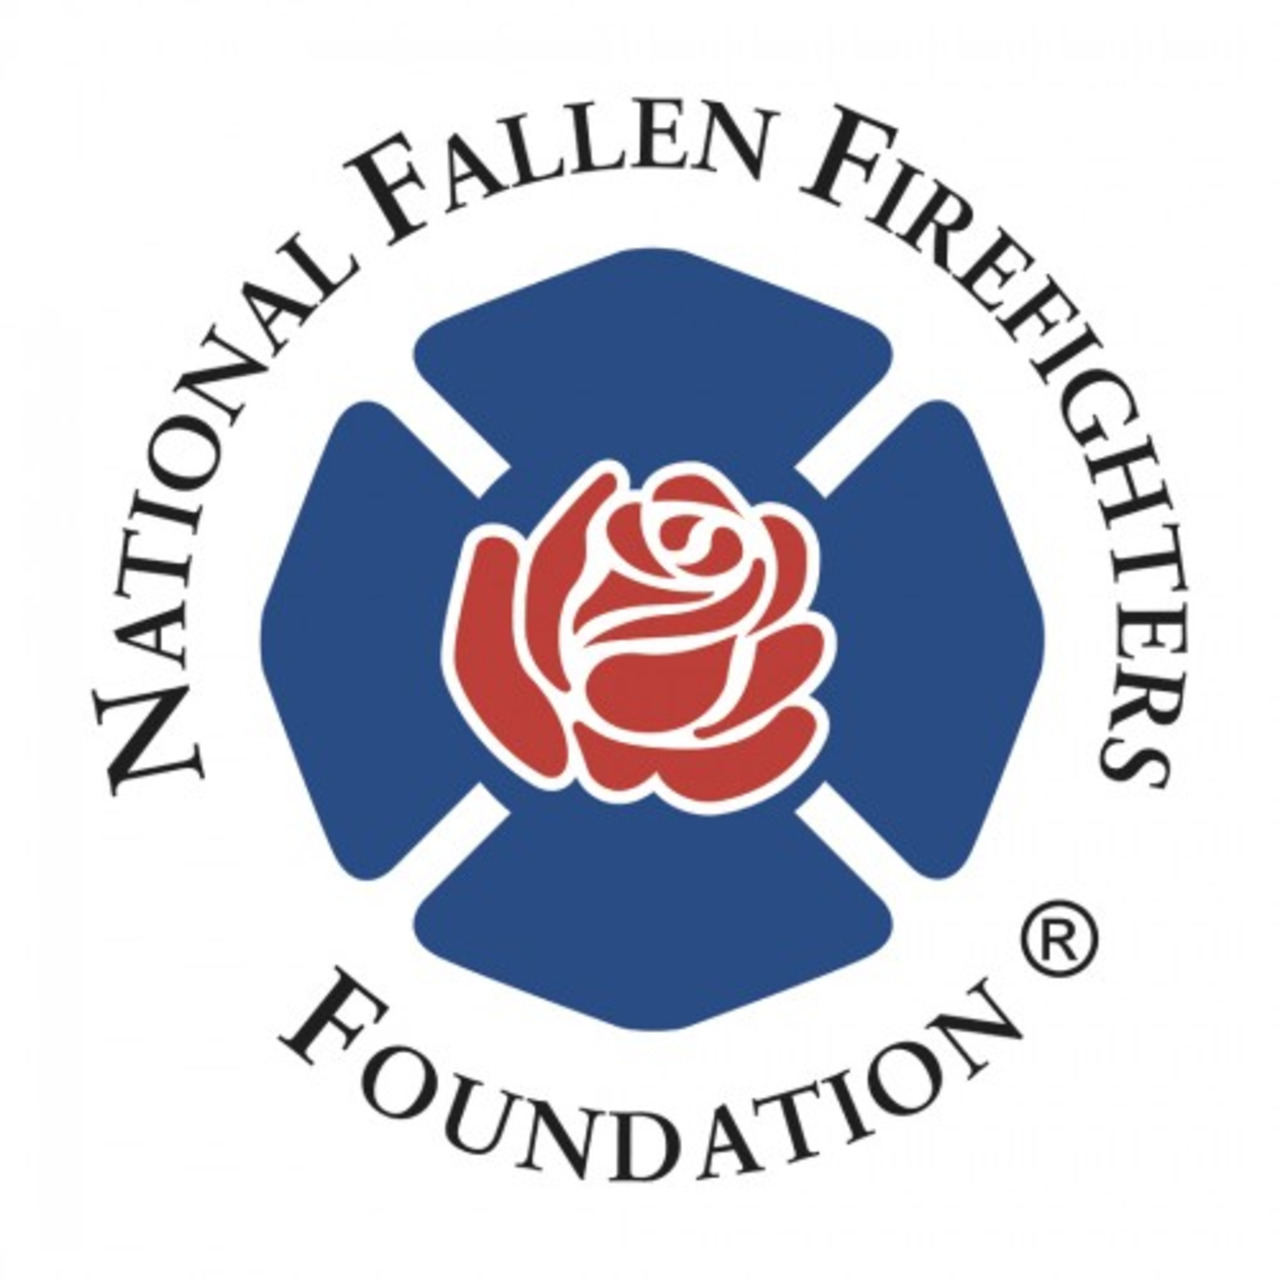 9c369e2f2d9 NFFF Announces NY Knicks 9 11 Memorial Stair Climb. Join the National Fallen  ...